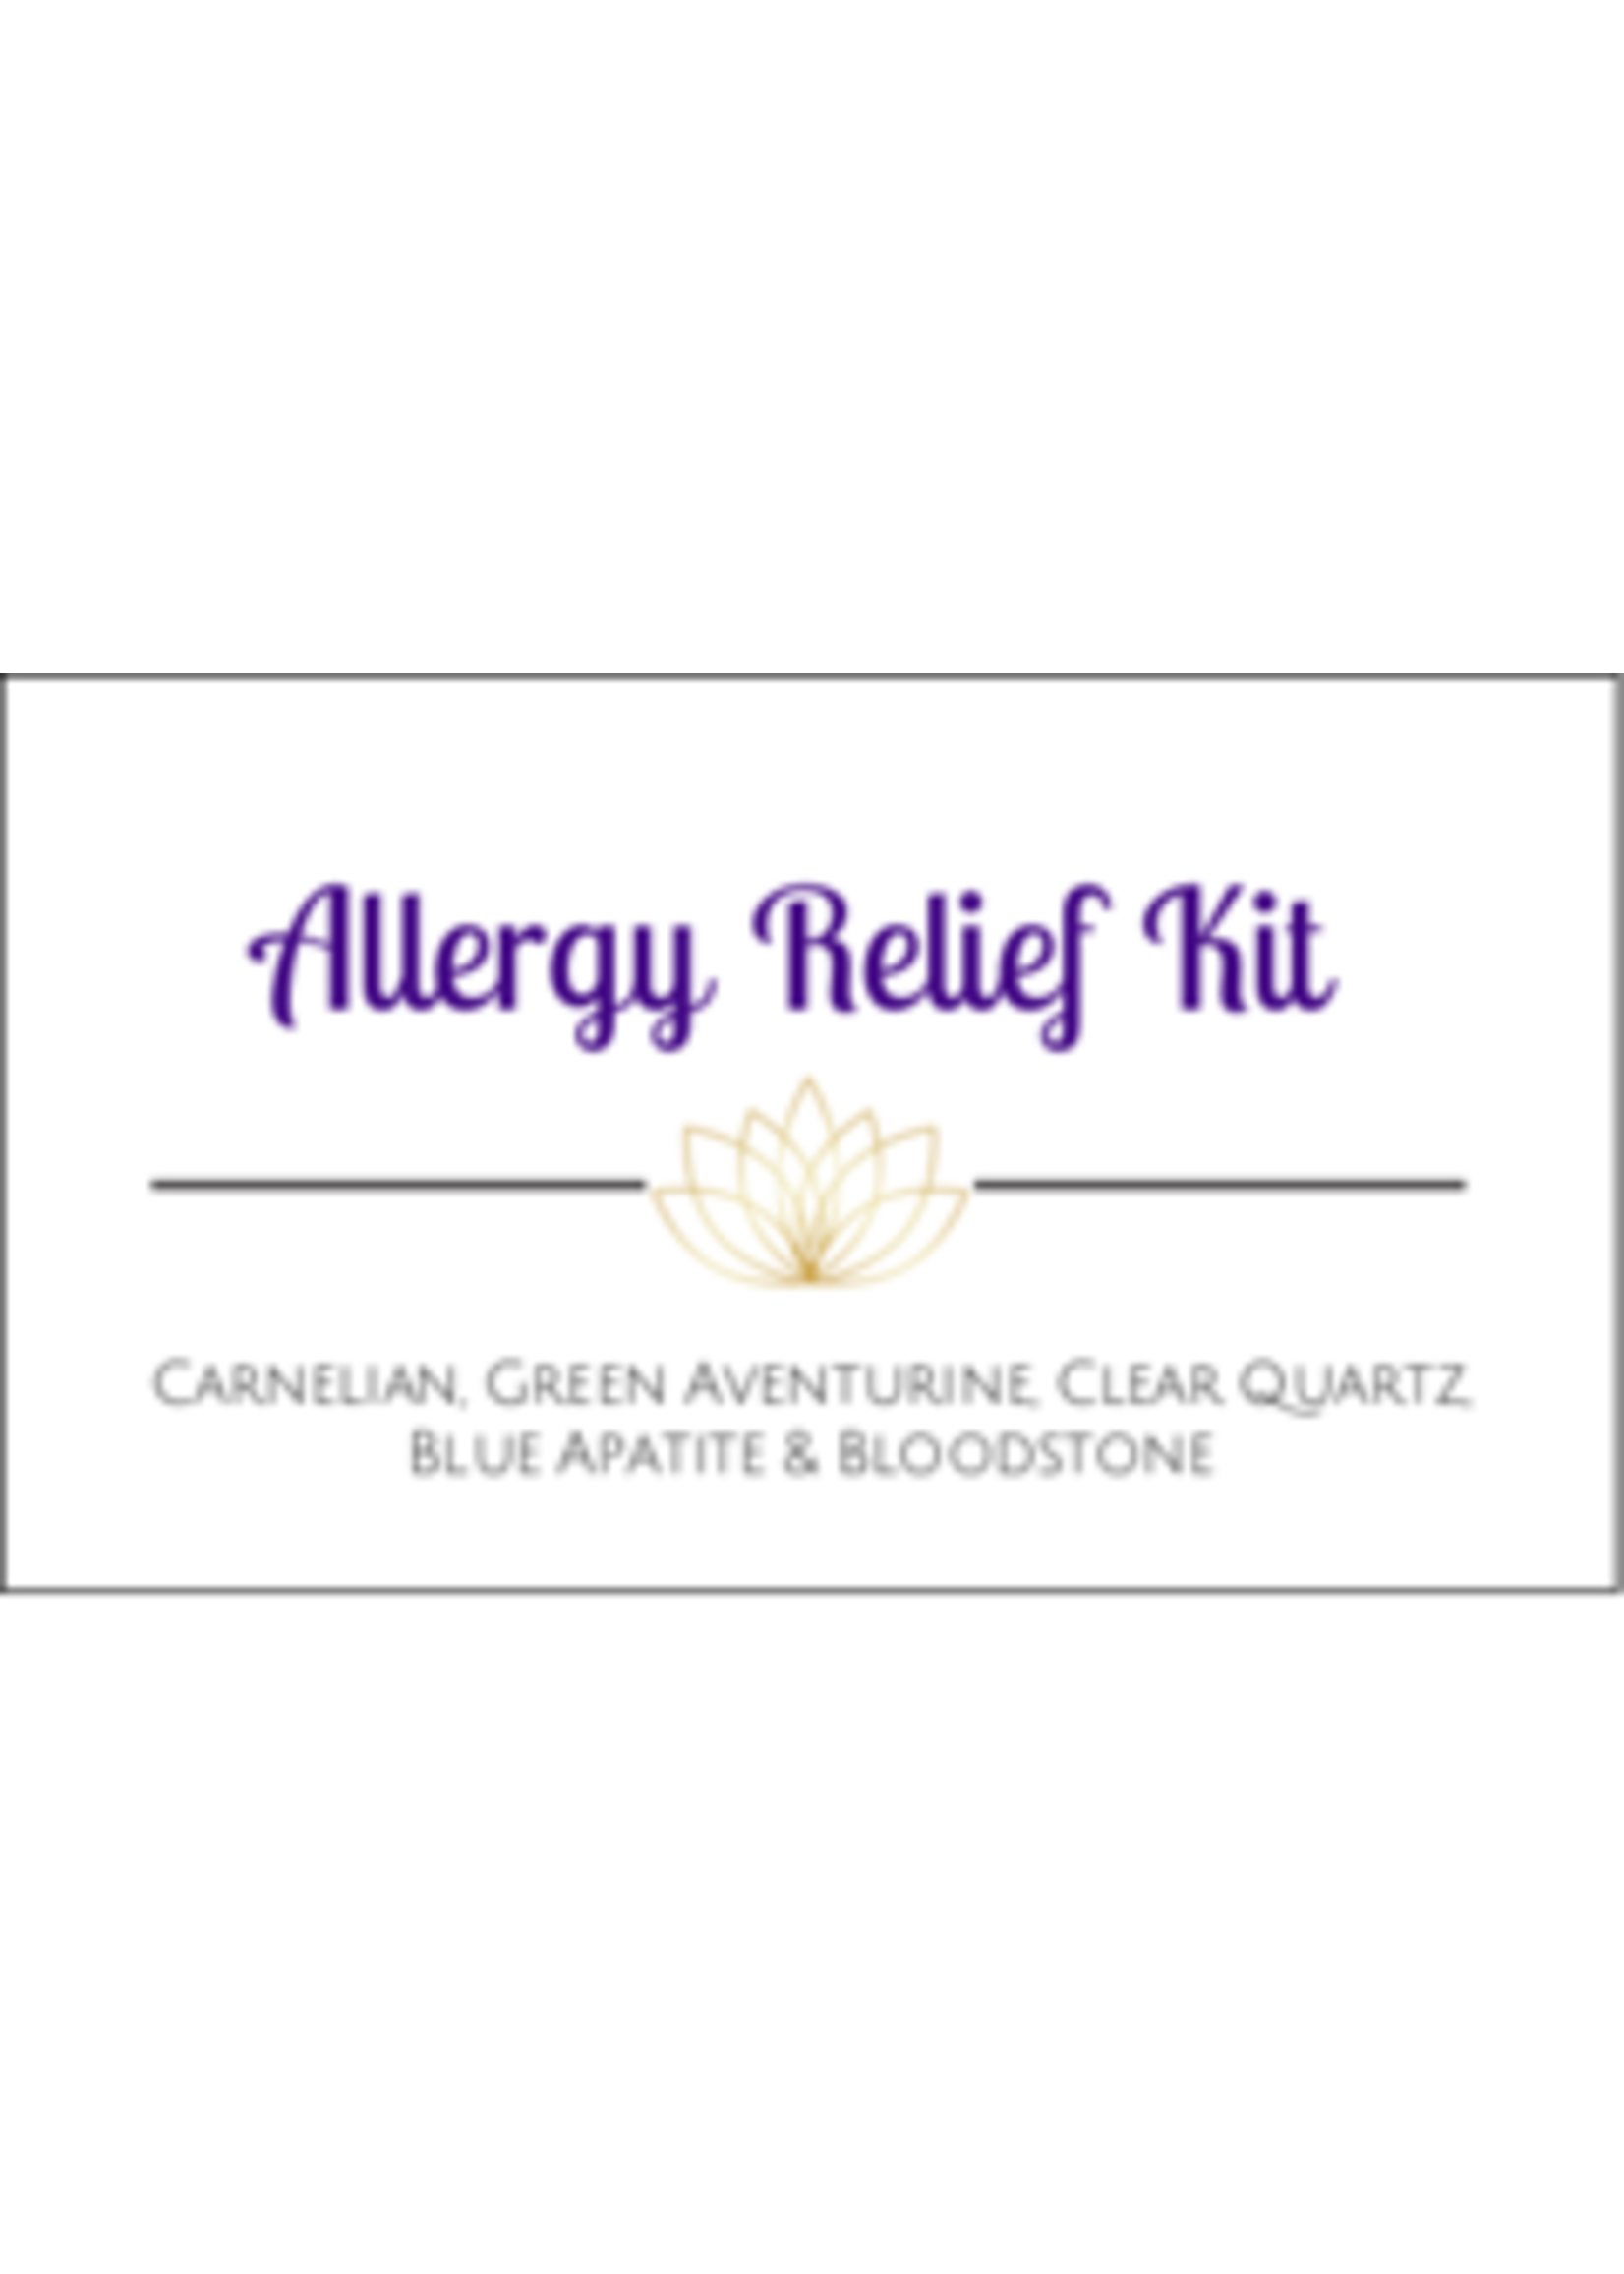 Allergy Relief Crystal Kit Cards - Box of 100